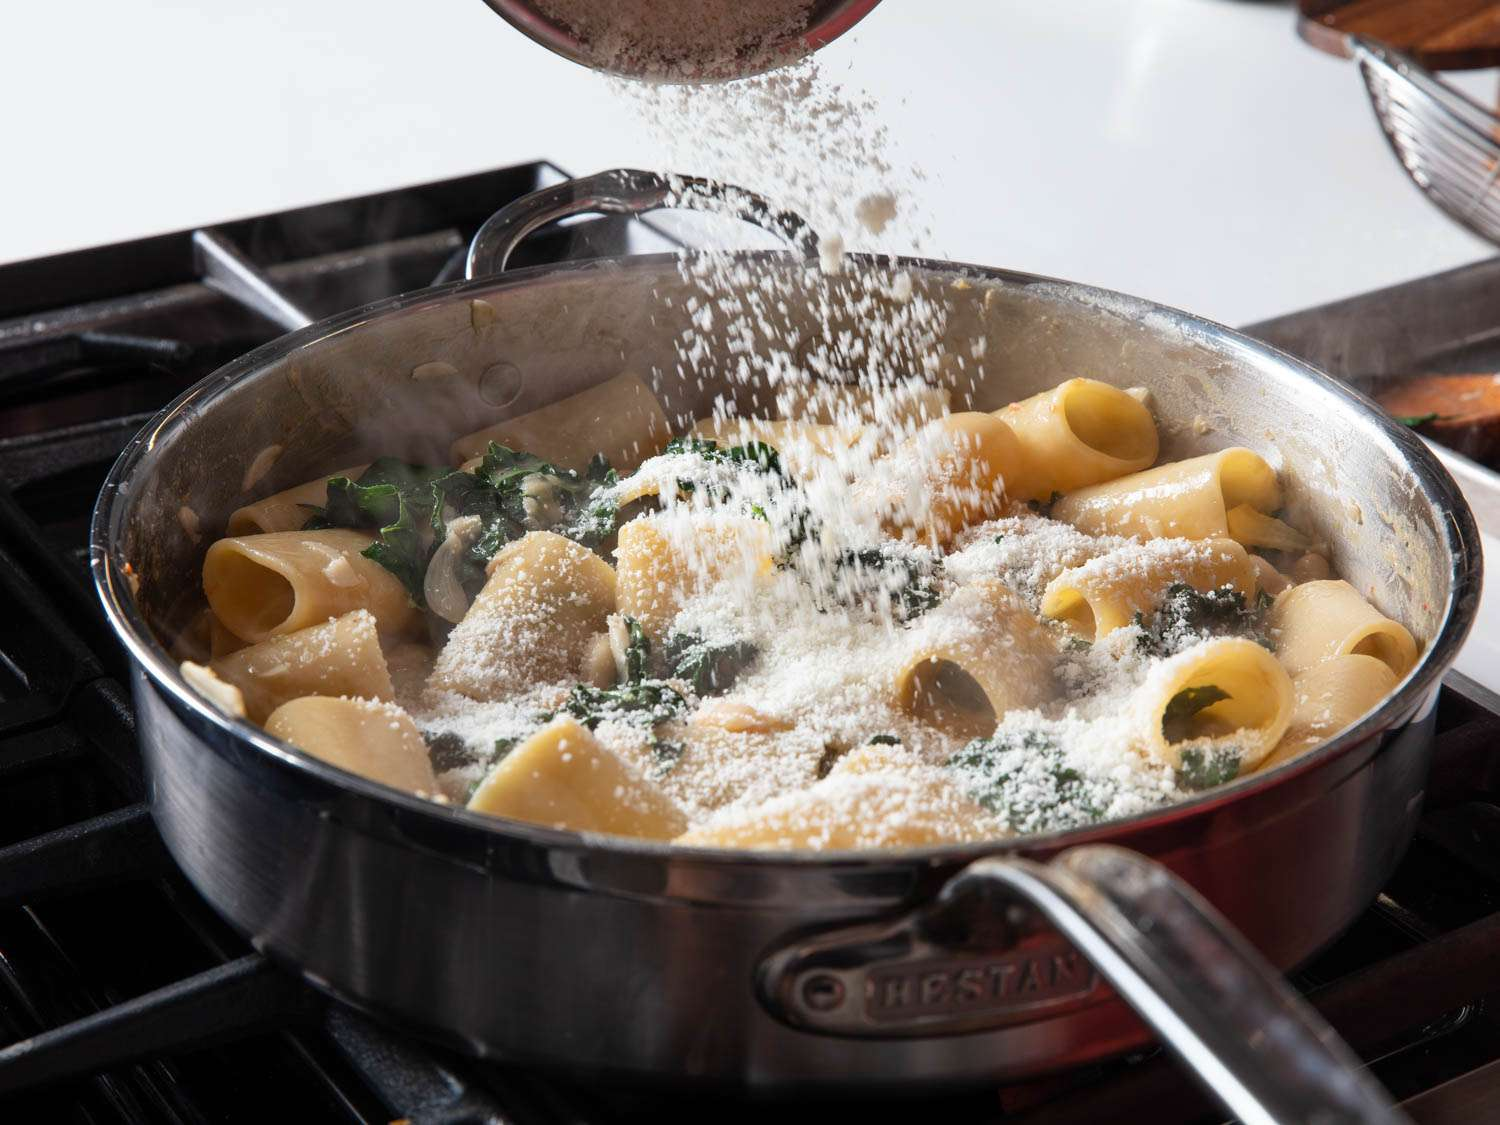 Adding cheese to a pan of rigatoni with bean sauce